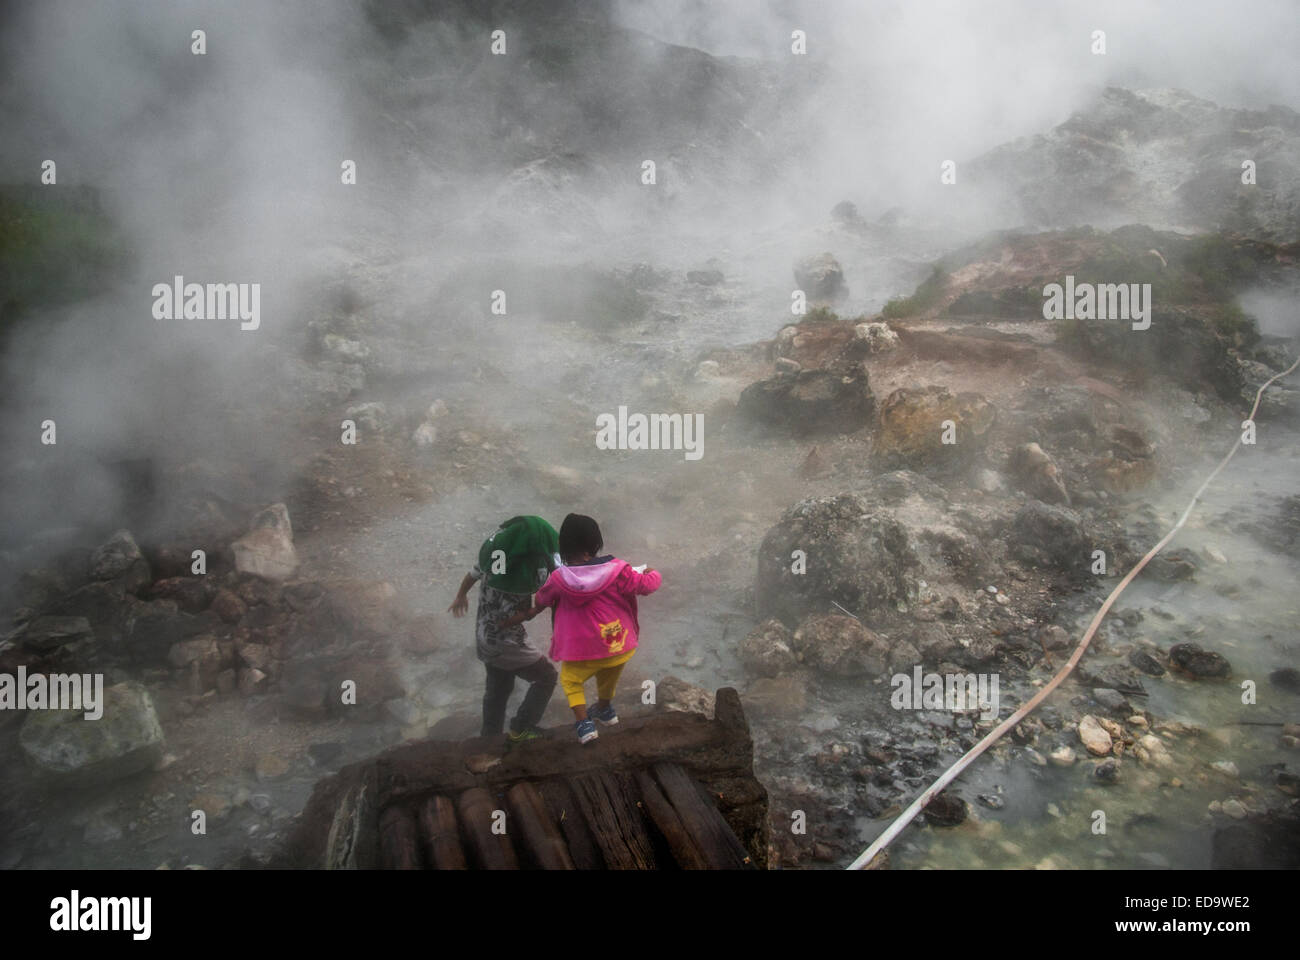 Children passing through a hazy fumarole field in North Sulawesi, Indonesia. - Stock Image